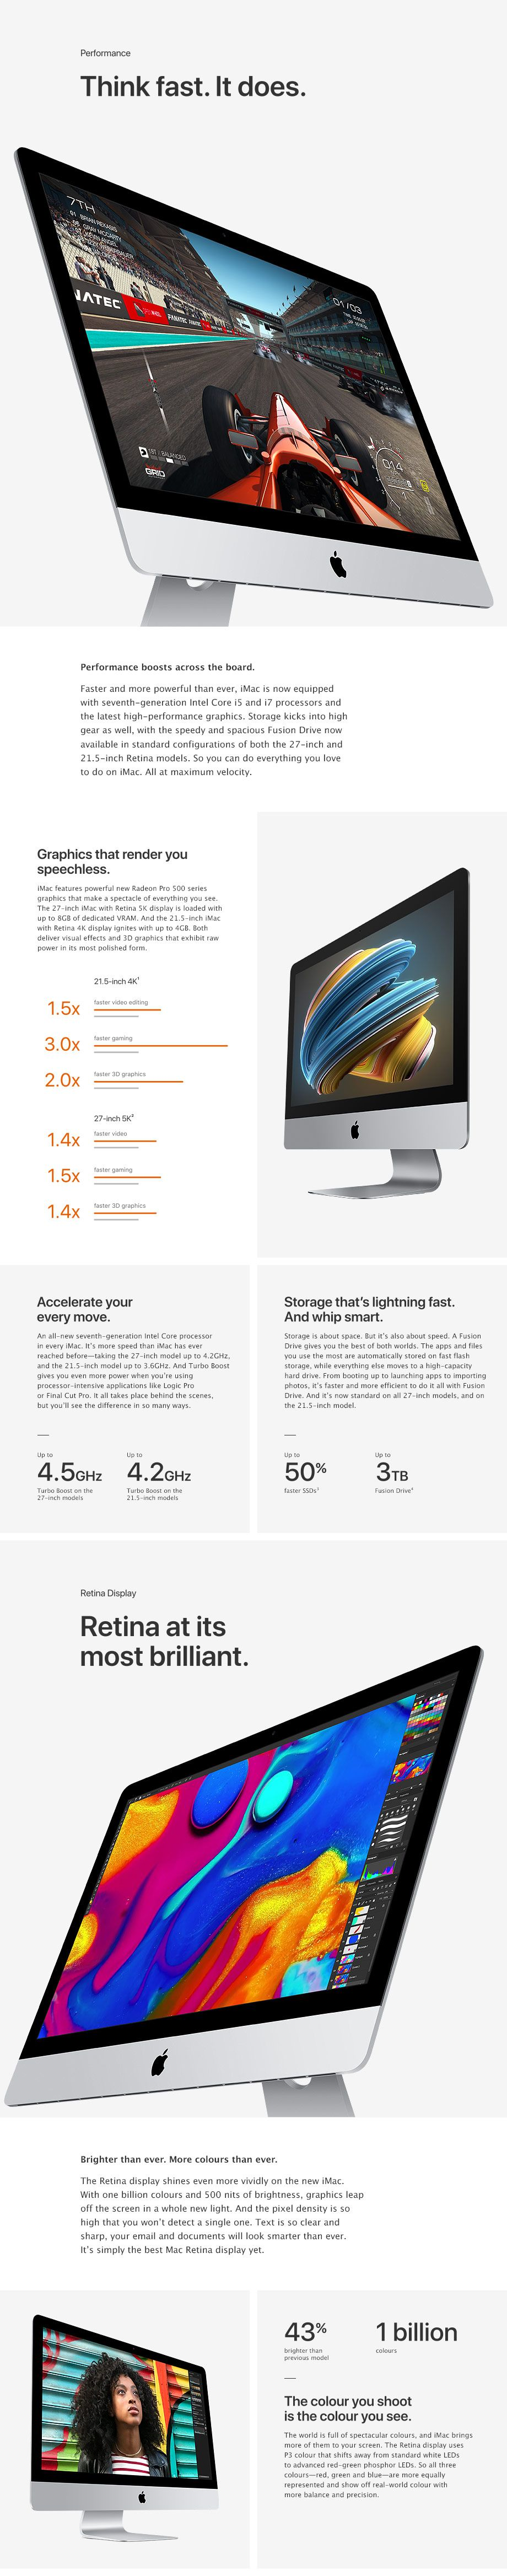 Performance, Retina Display